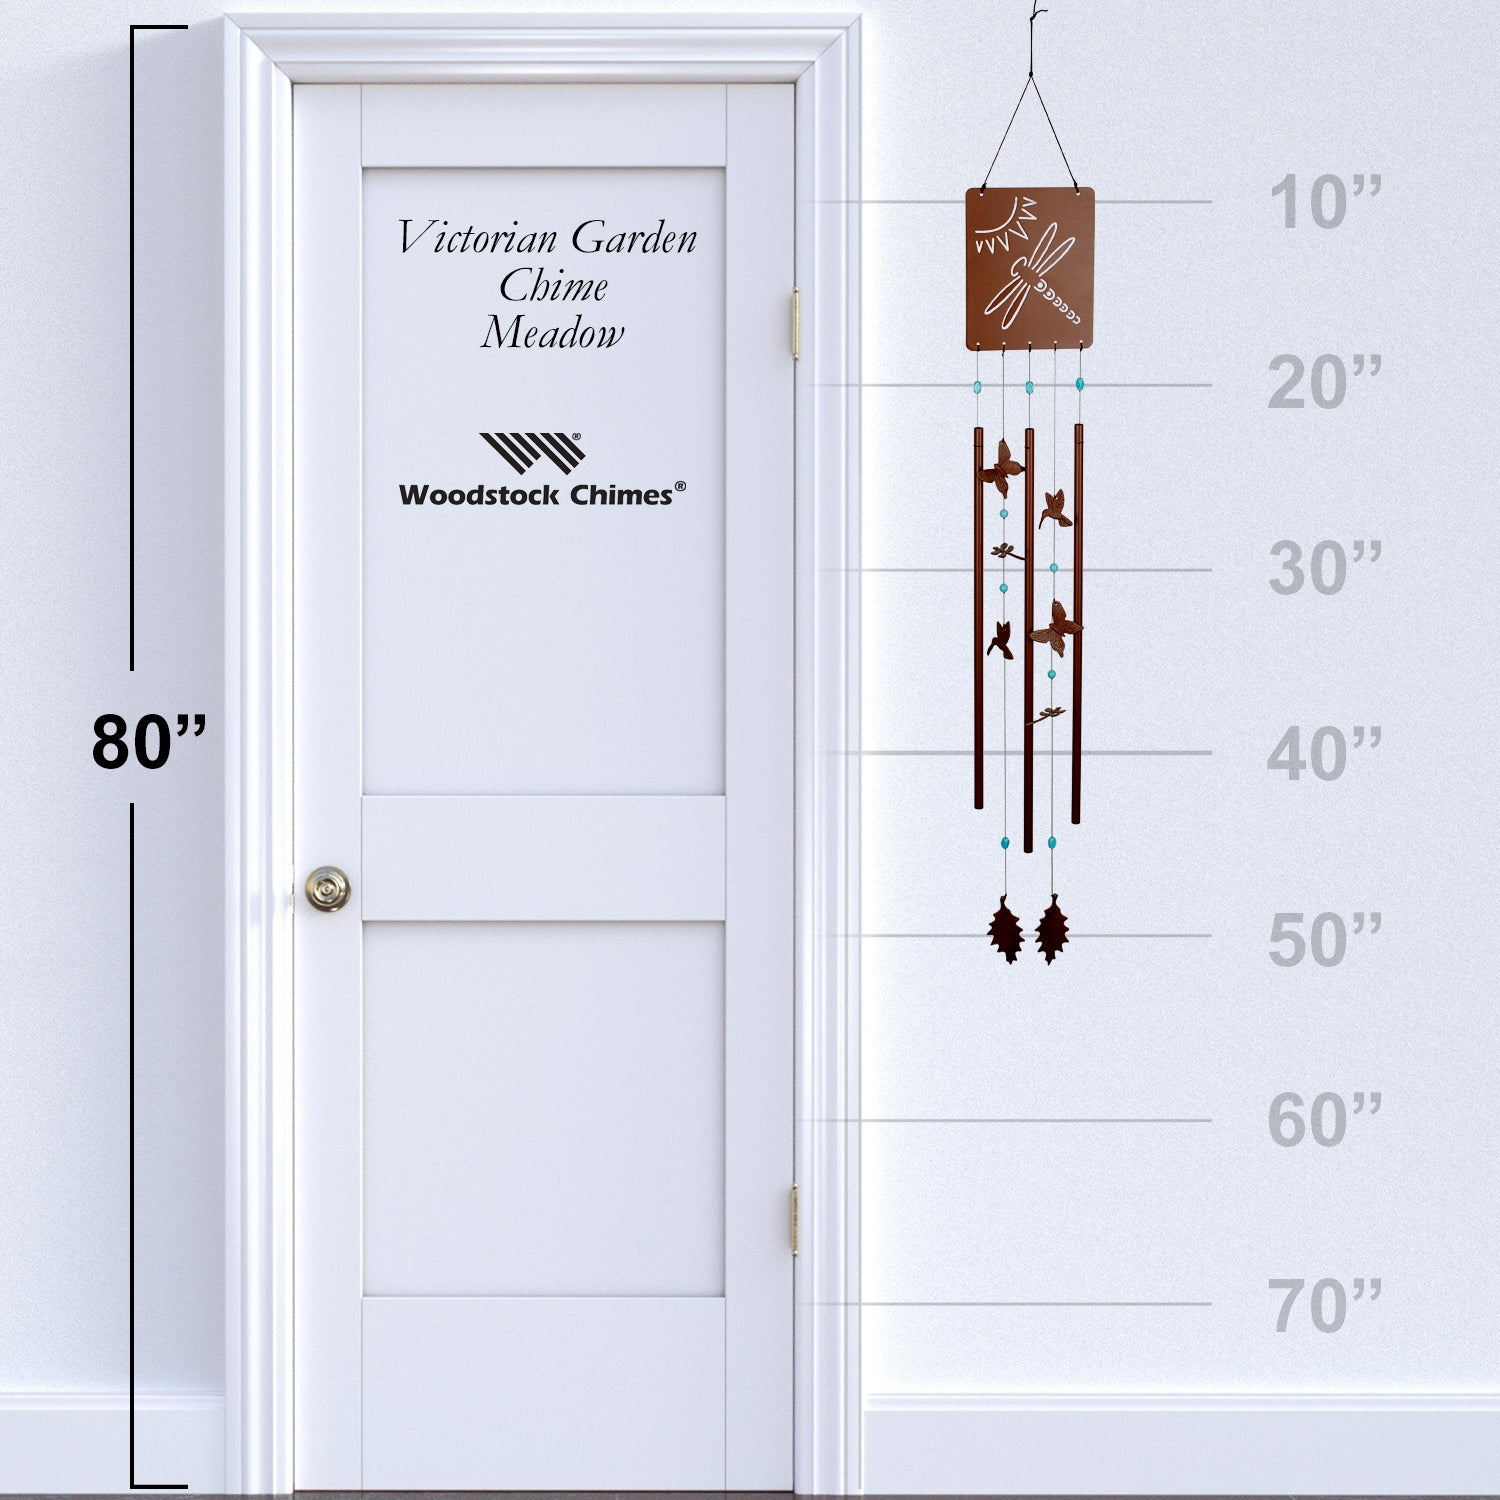 Victorian Garden Chime - Meadow proportion image